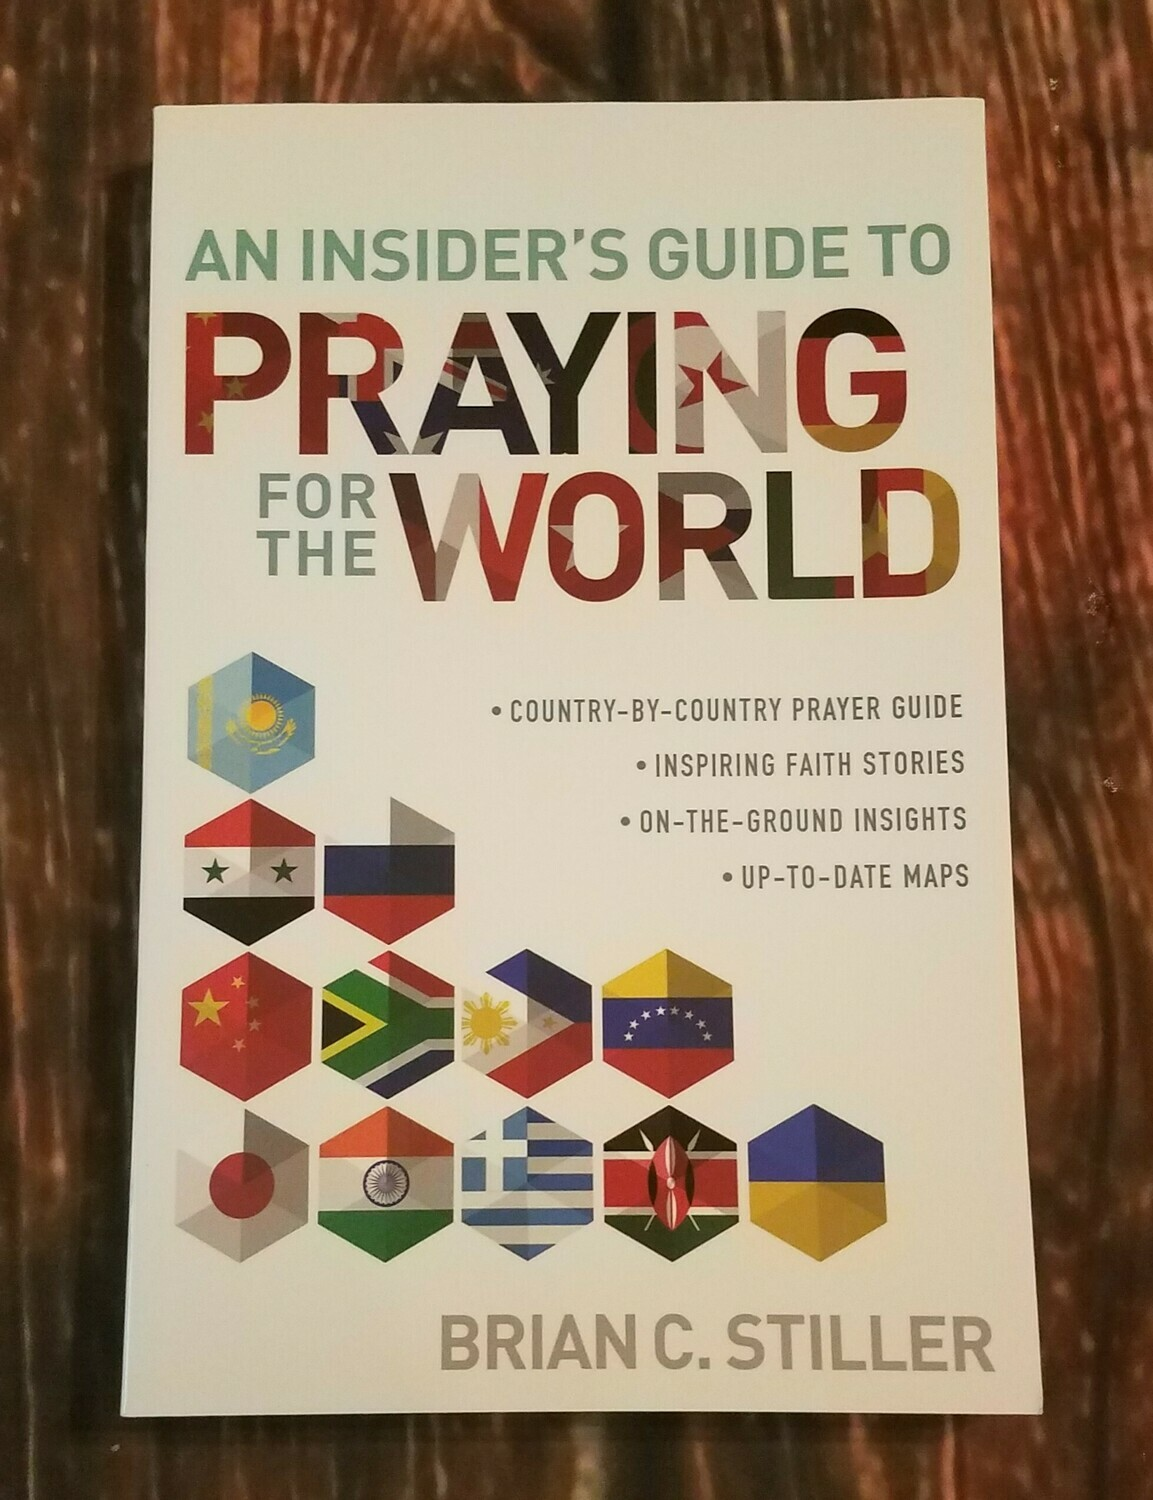 An Insider's Guide to Praying for the World by Brian C. Stiller